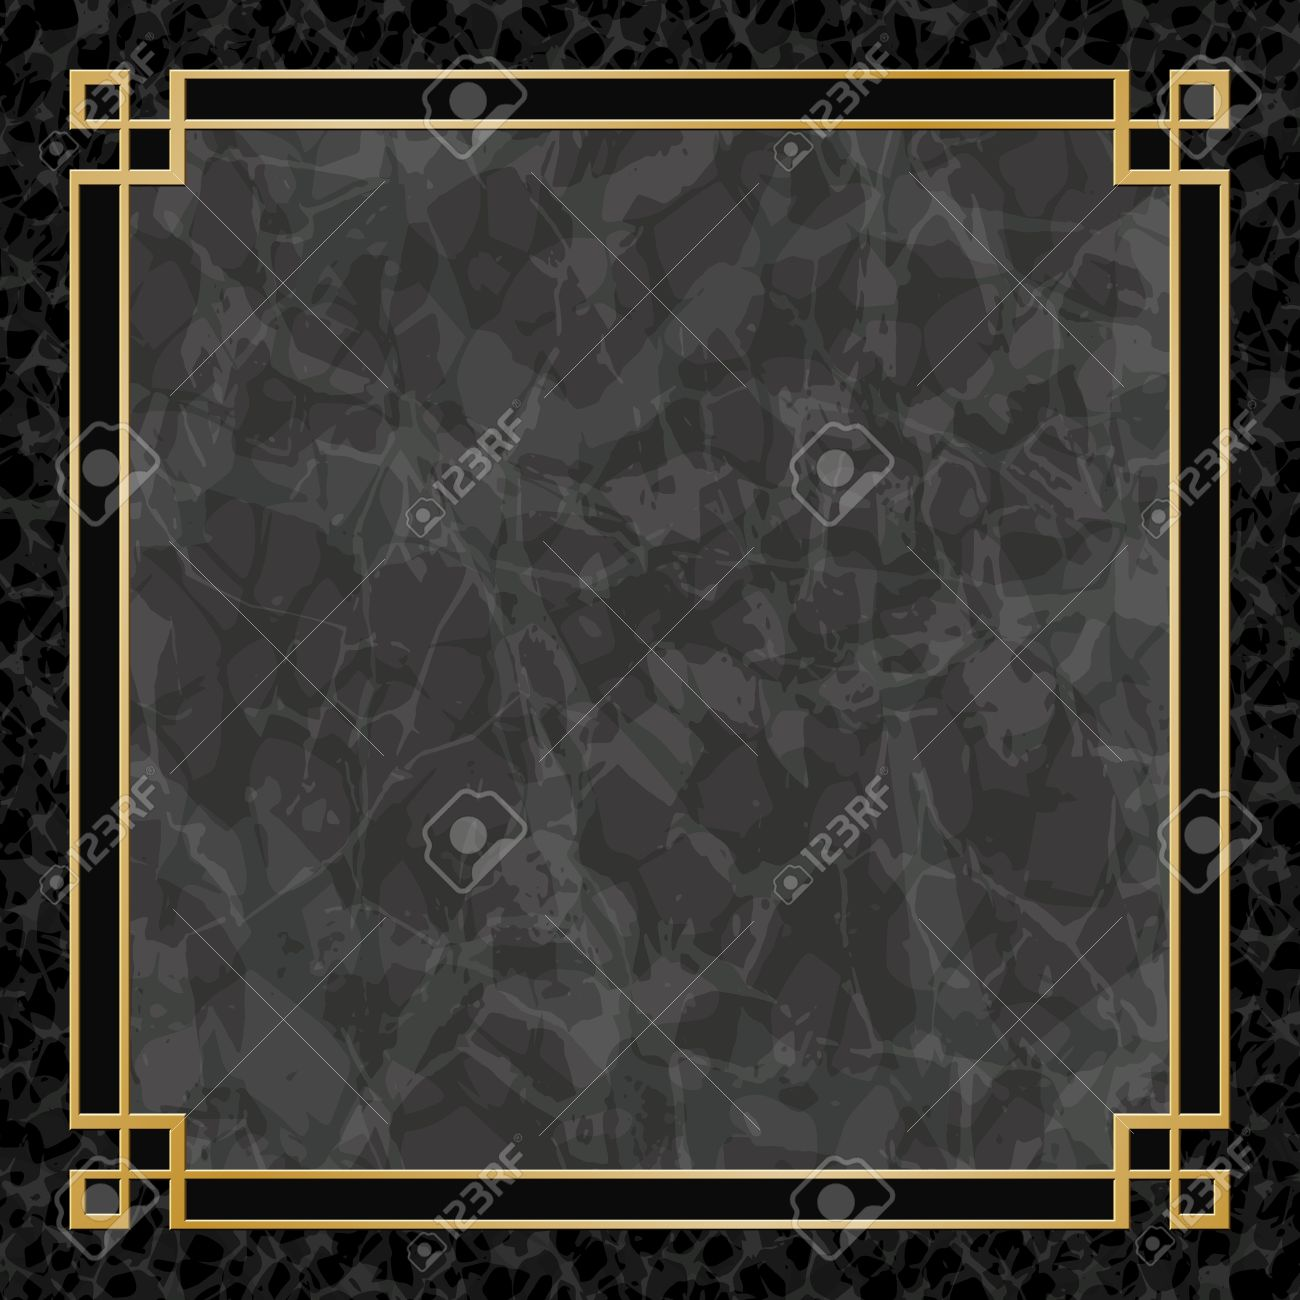 A Black Marble Backgrounds With Gold Frame Border Royalty Free